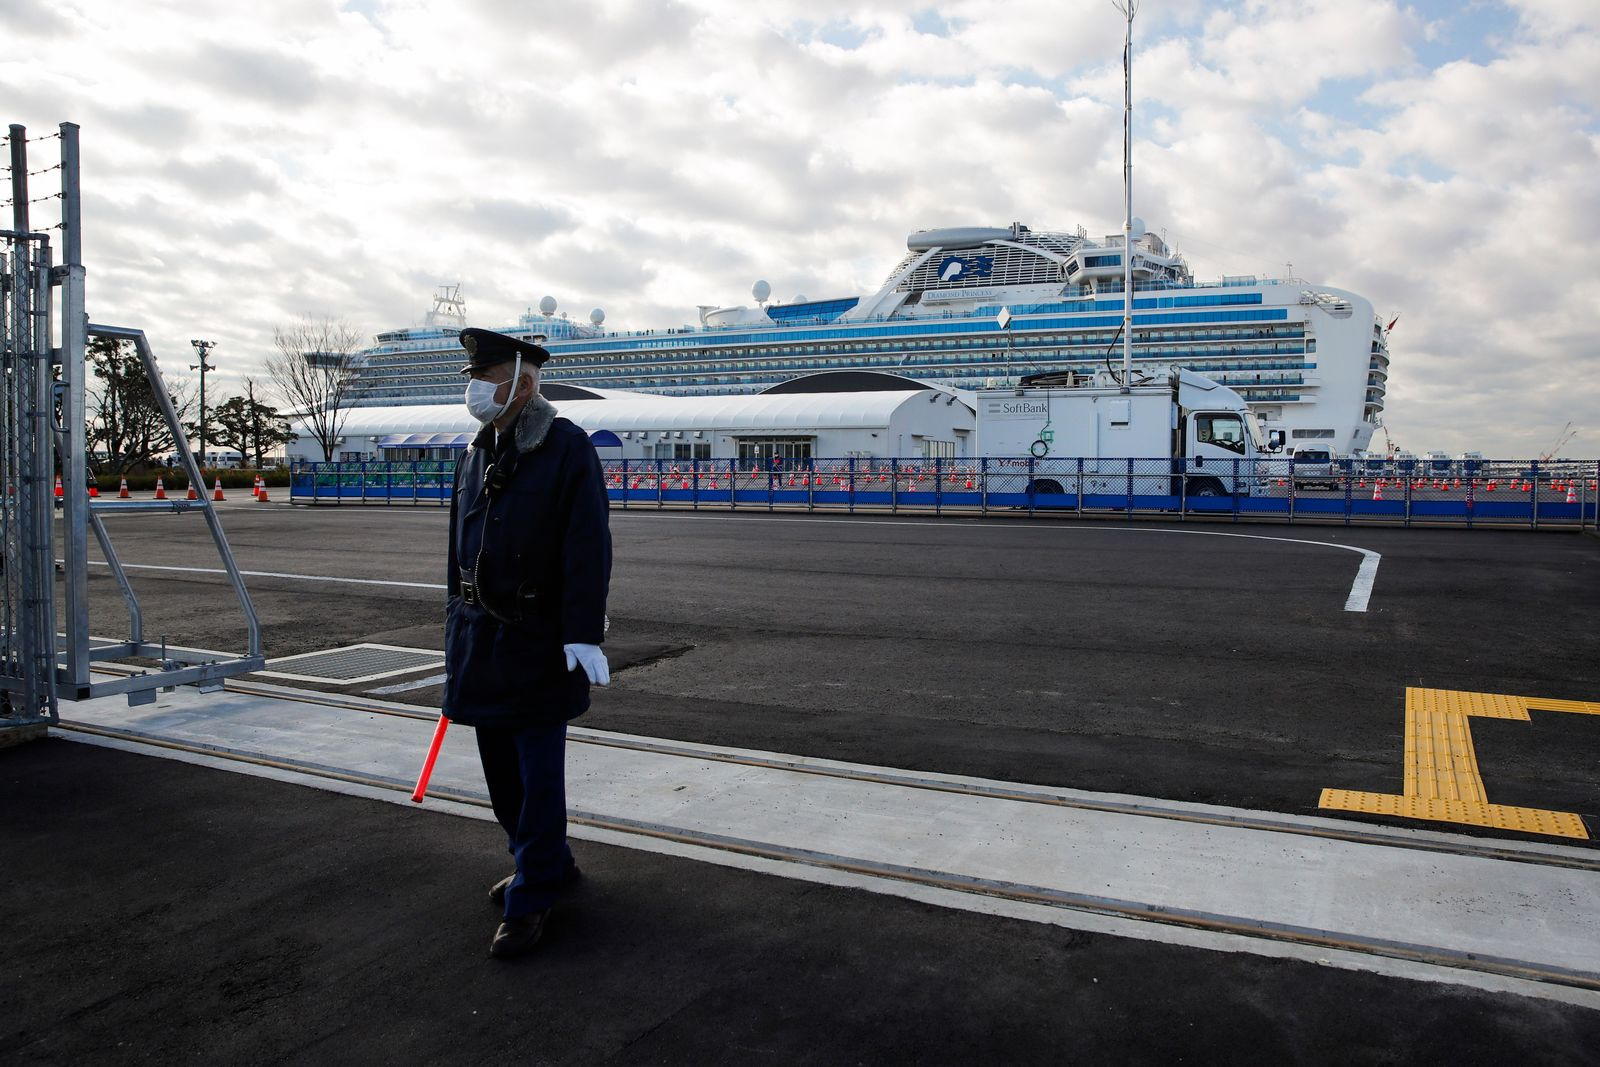 A security guard stands at the entrance to Yokohama port as the quarantined Diamond Princess cruise ship is seen in the background Wednesday, Feb. 19, 2020, in Yokohama, near Tokyo. Passengers tested negative for COVID-19 will start disembarking Wednesday. (AP Photo/Jae C. Hong)